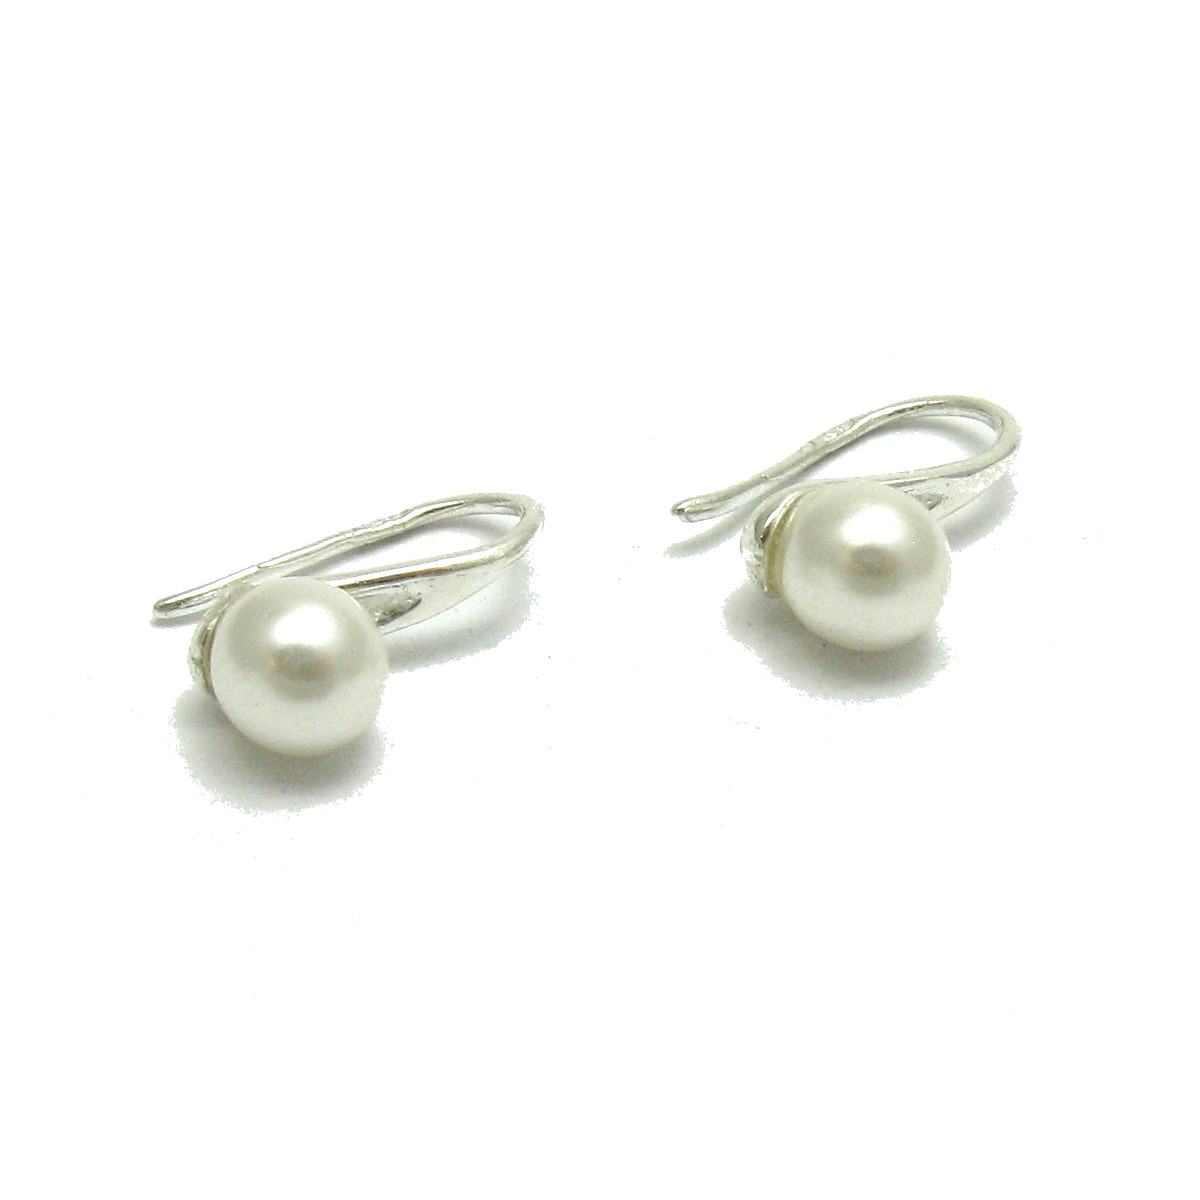 Silver earrings - E000644